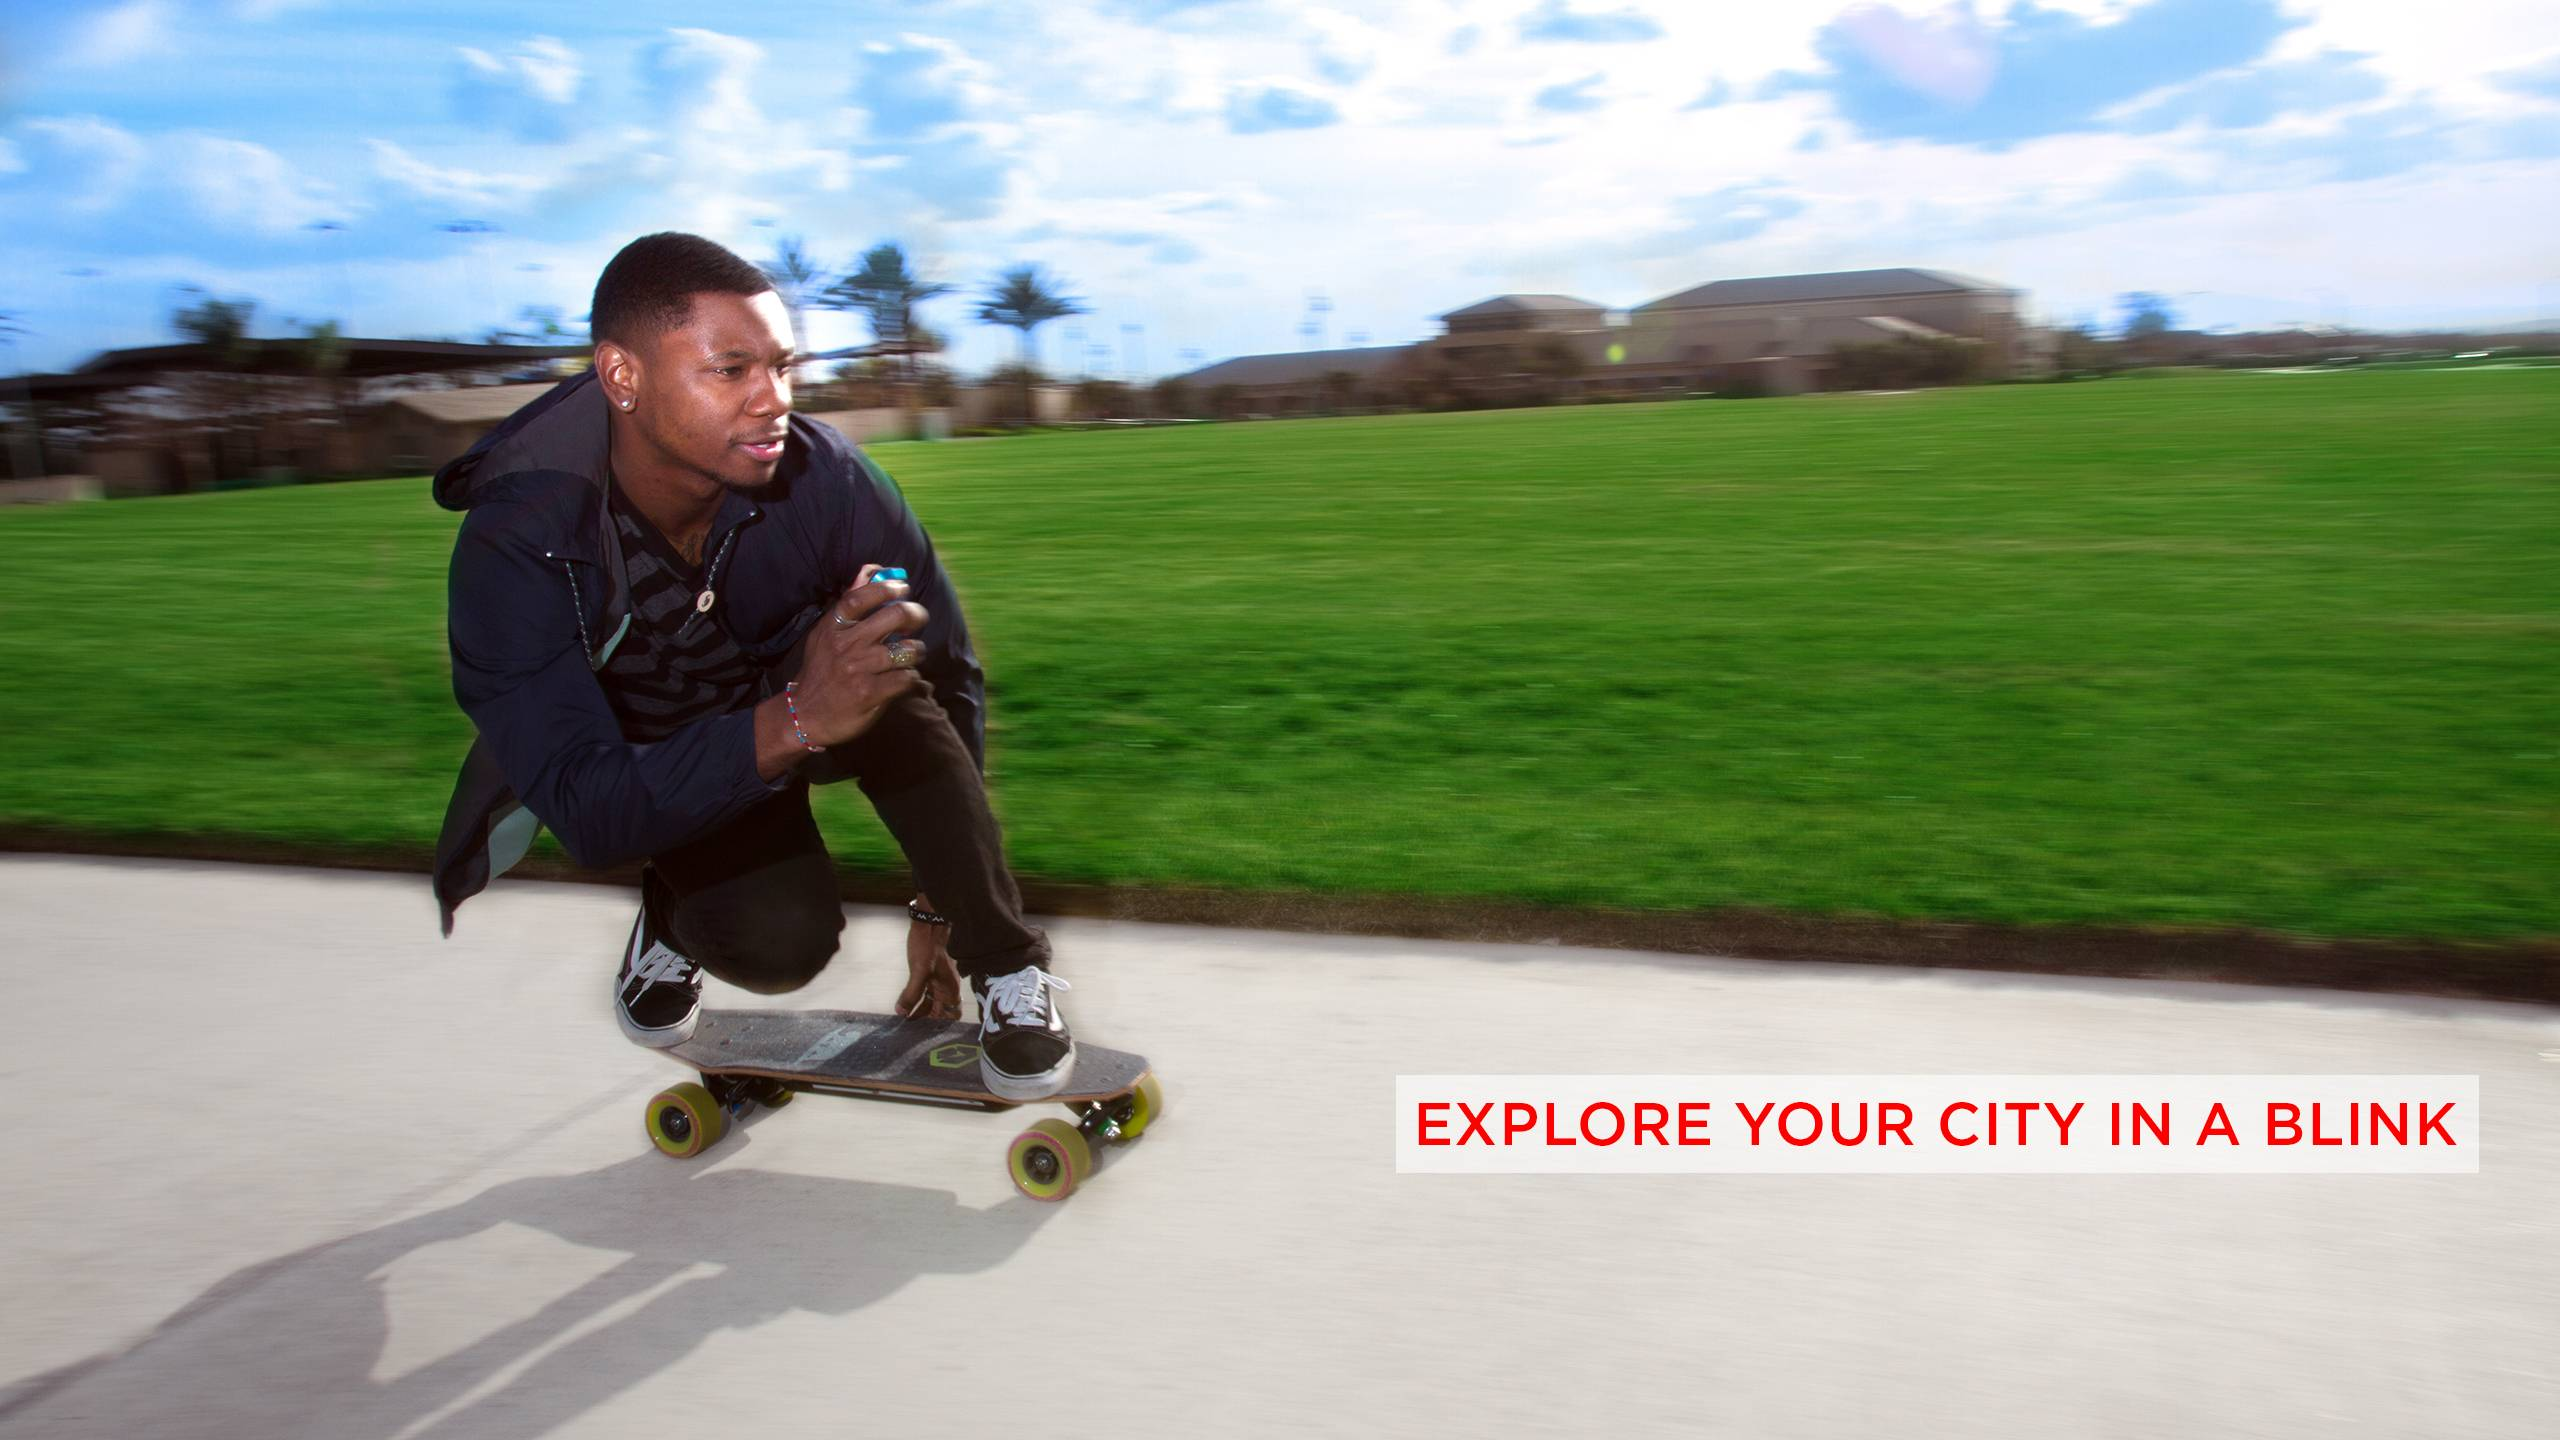 You Can Now Control Your Electric Skateboard Using An iPhone skateboard2